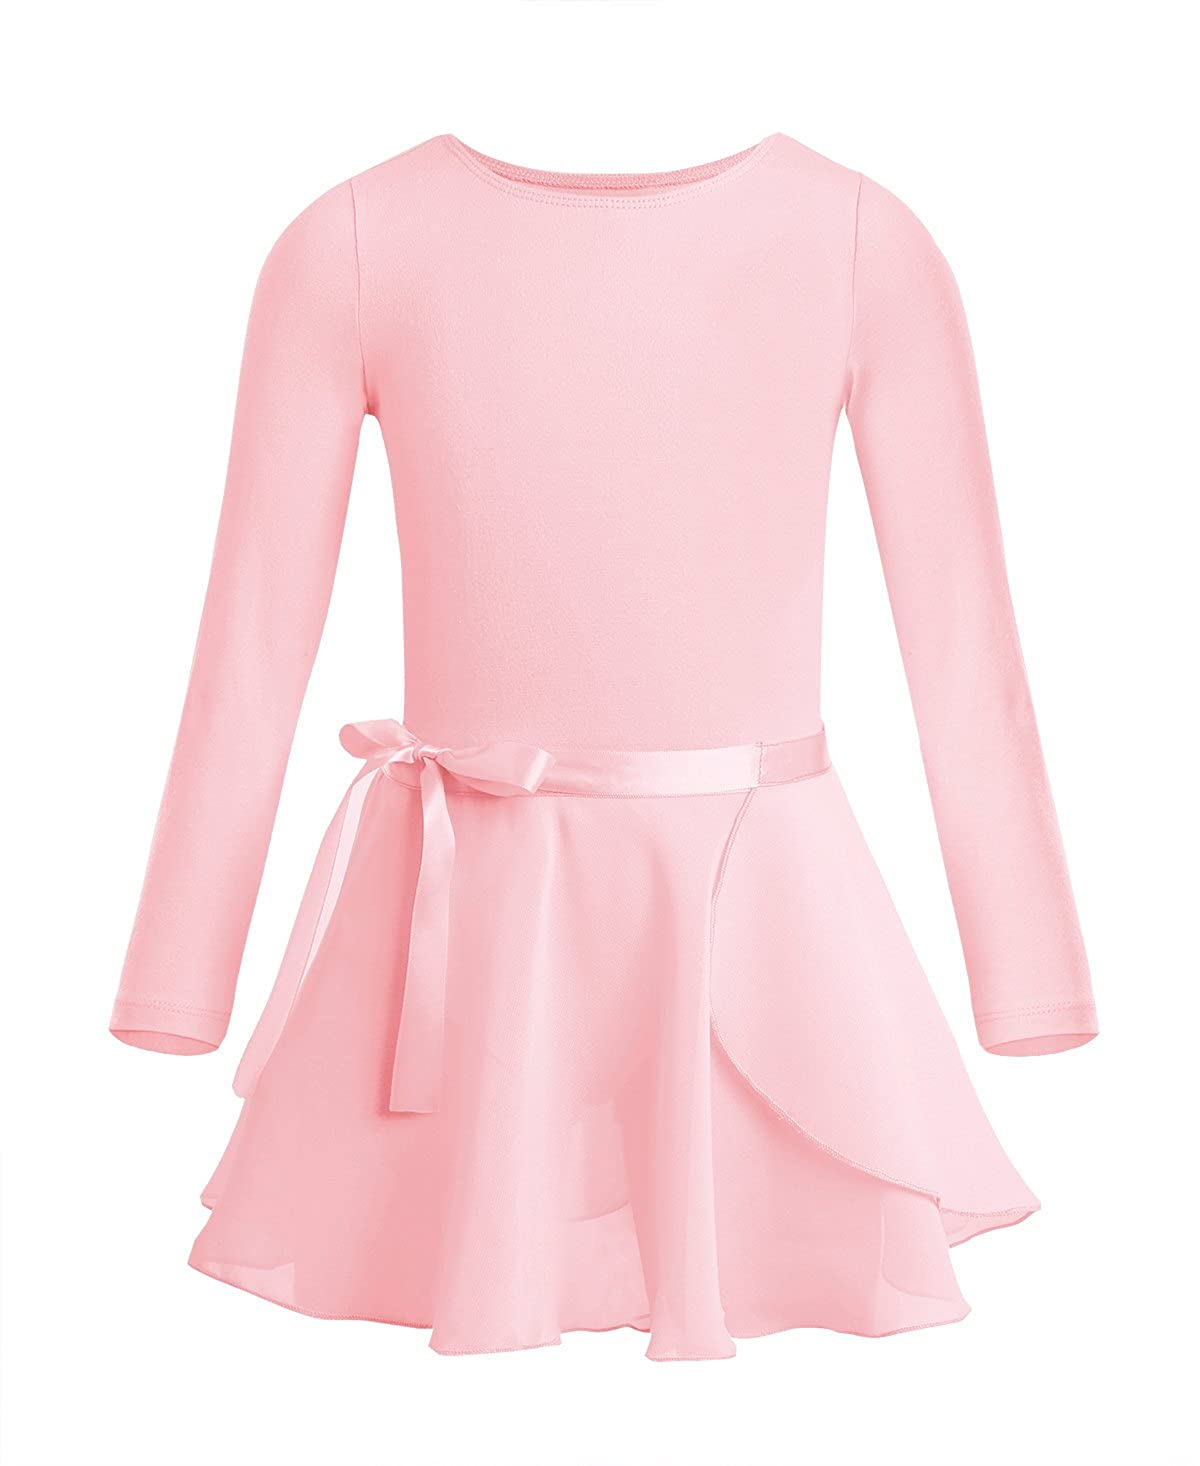 【限定特価】 Alvivi DRESS ガールズ B07DWZXTG5 5 DRESS/ 43591 6|Long Pink Sleeves Pearl Pink Long Sleeves Pearl Pink 43591, 菊地質舗:d0282238 --- book.officeporto.com